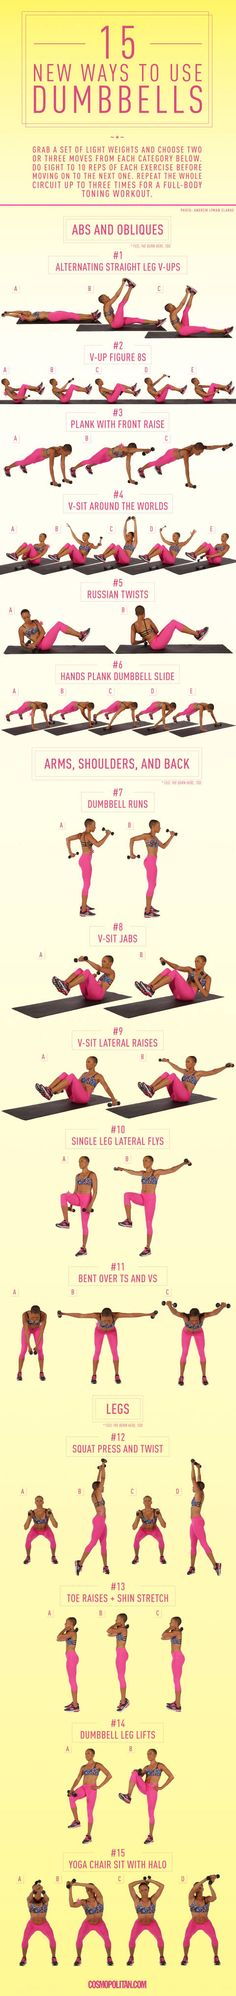 Dumbbell Exercises - 15 New Ways to Use Dumbbells